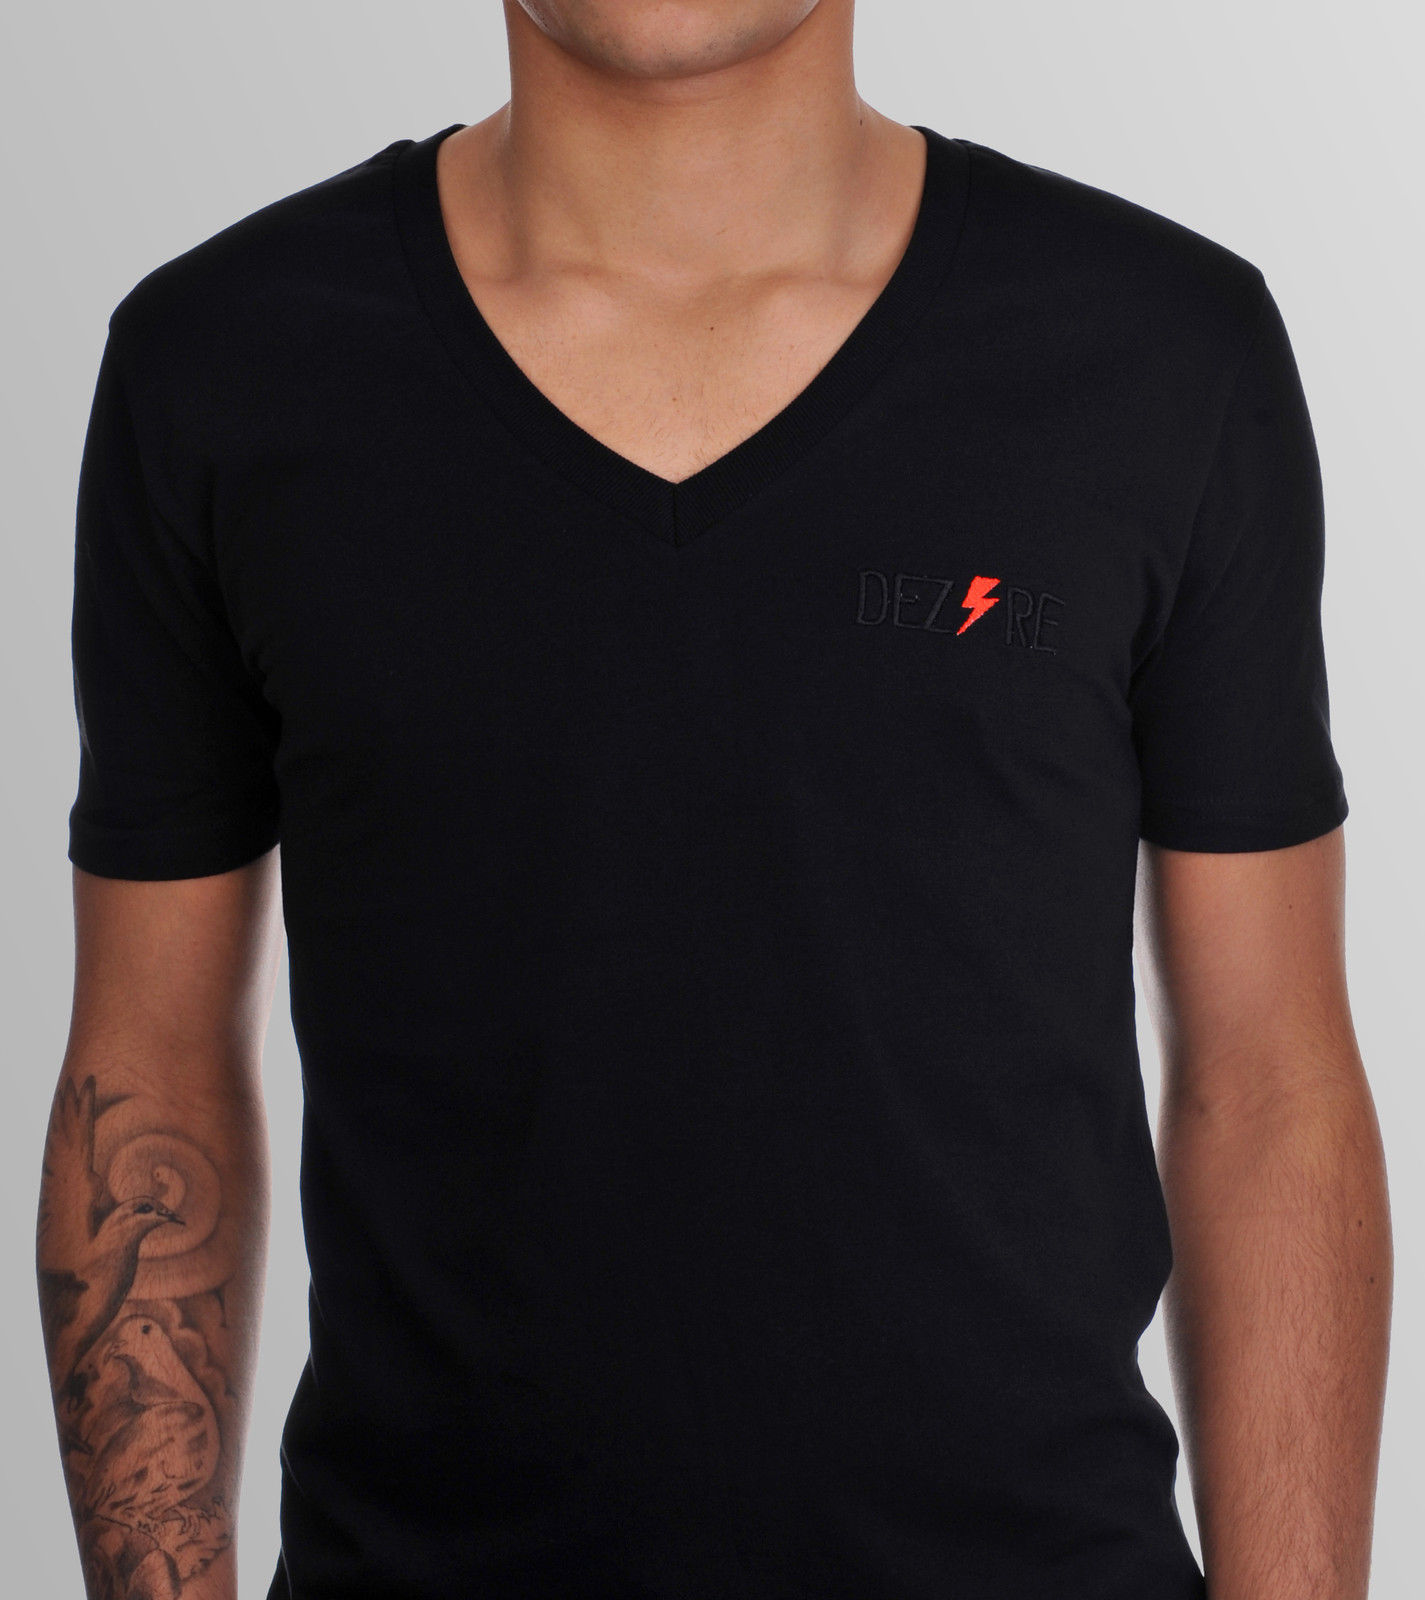 Black t shirt v shape - Custom Men V Shape Collar T Shirts With High Quality For Promotional